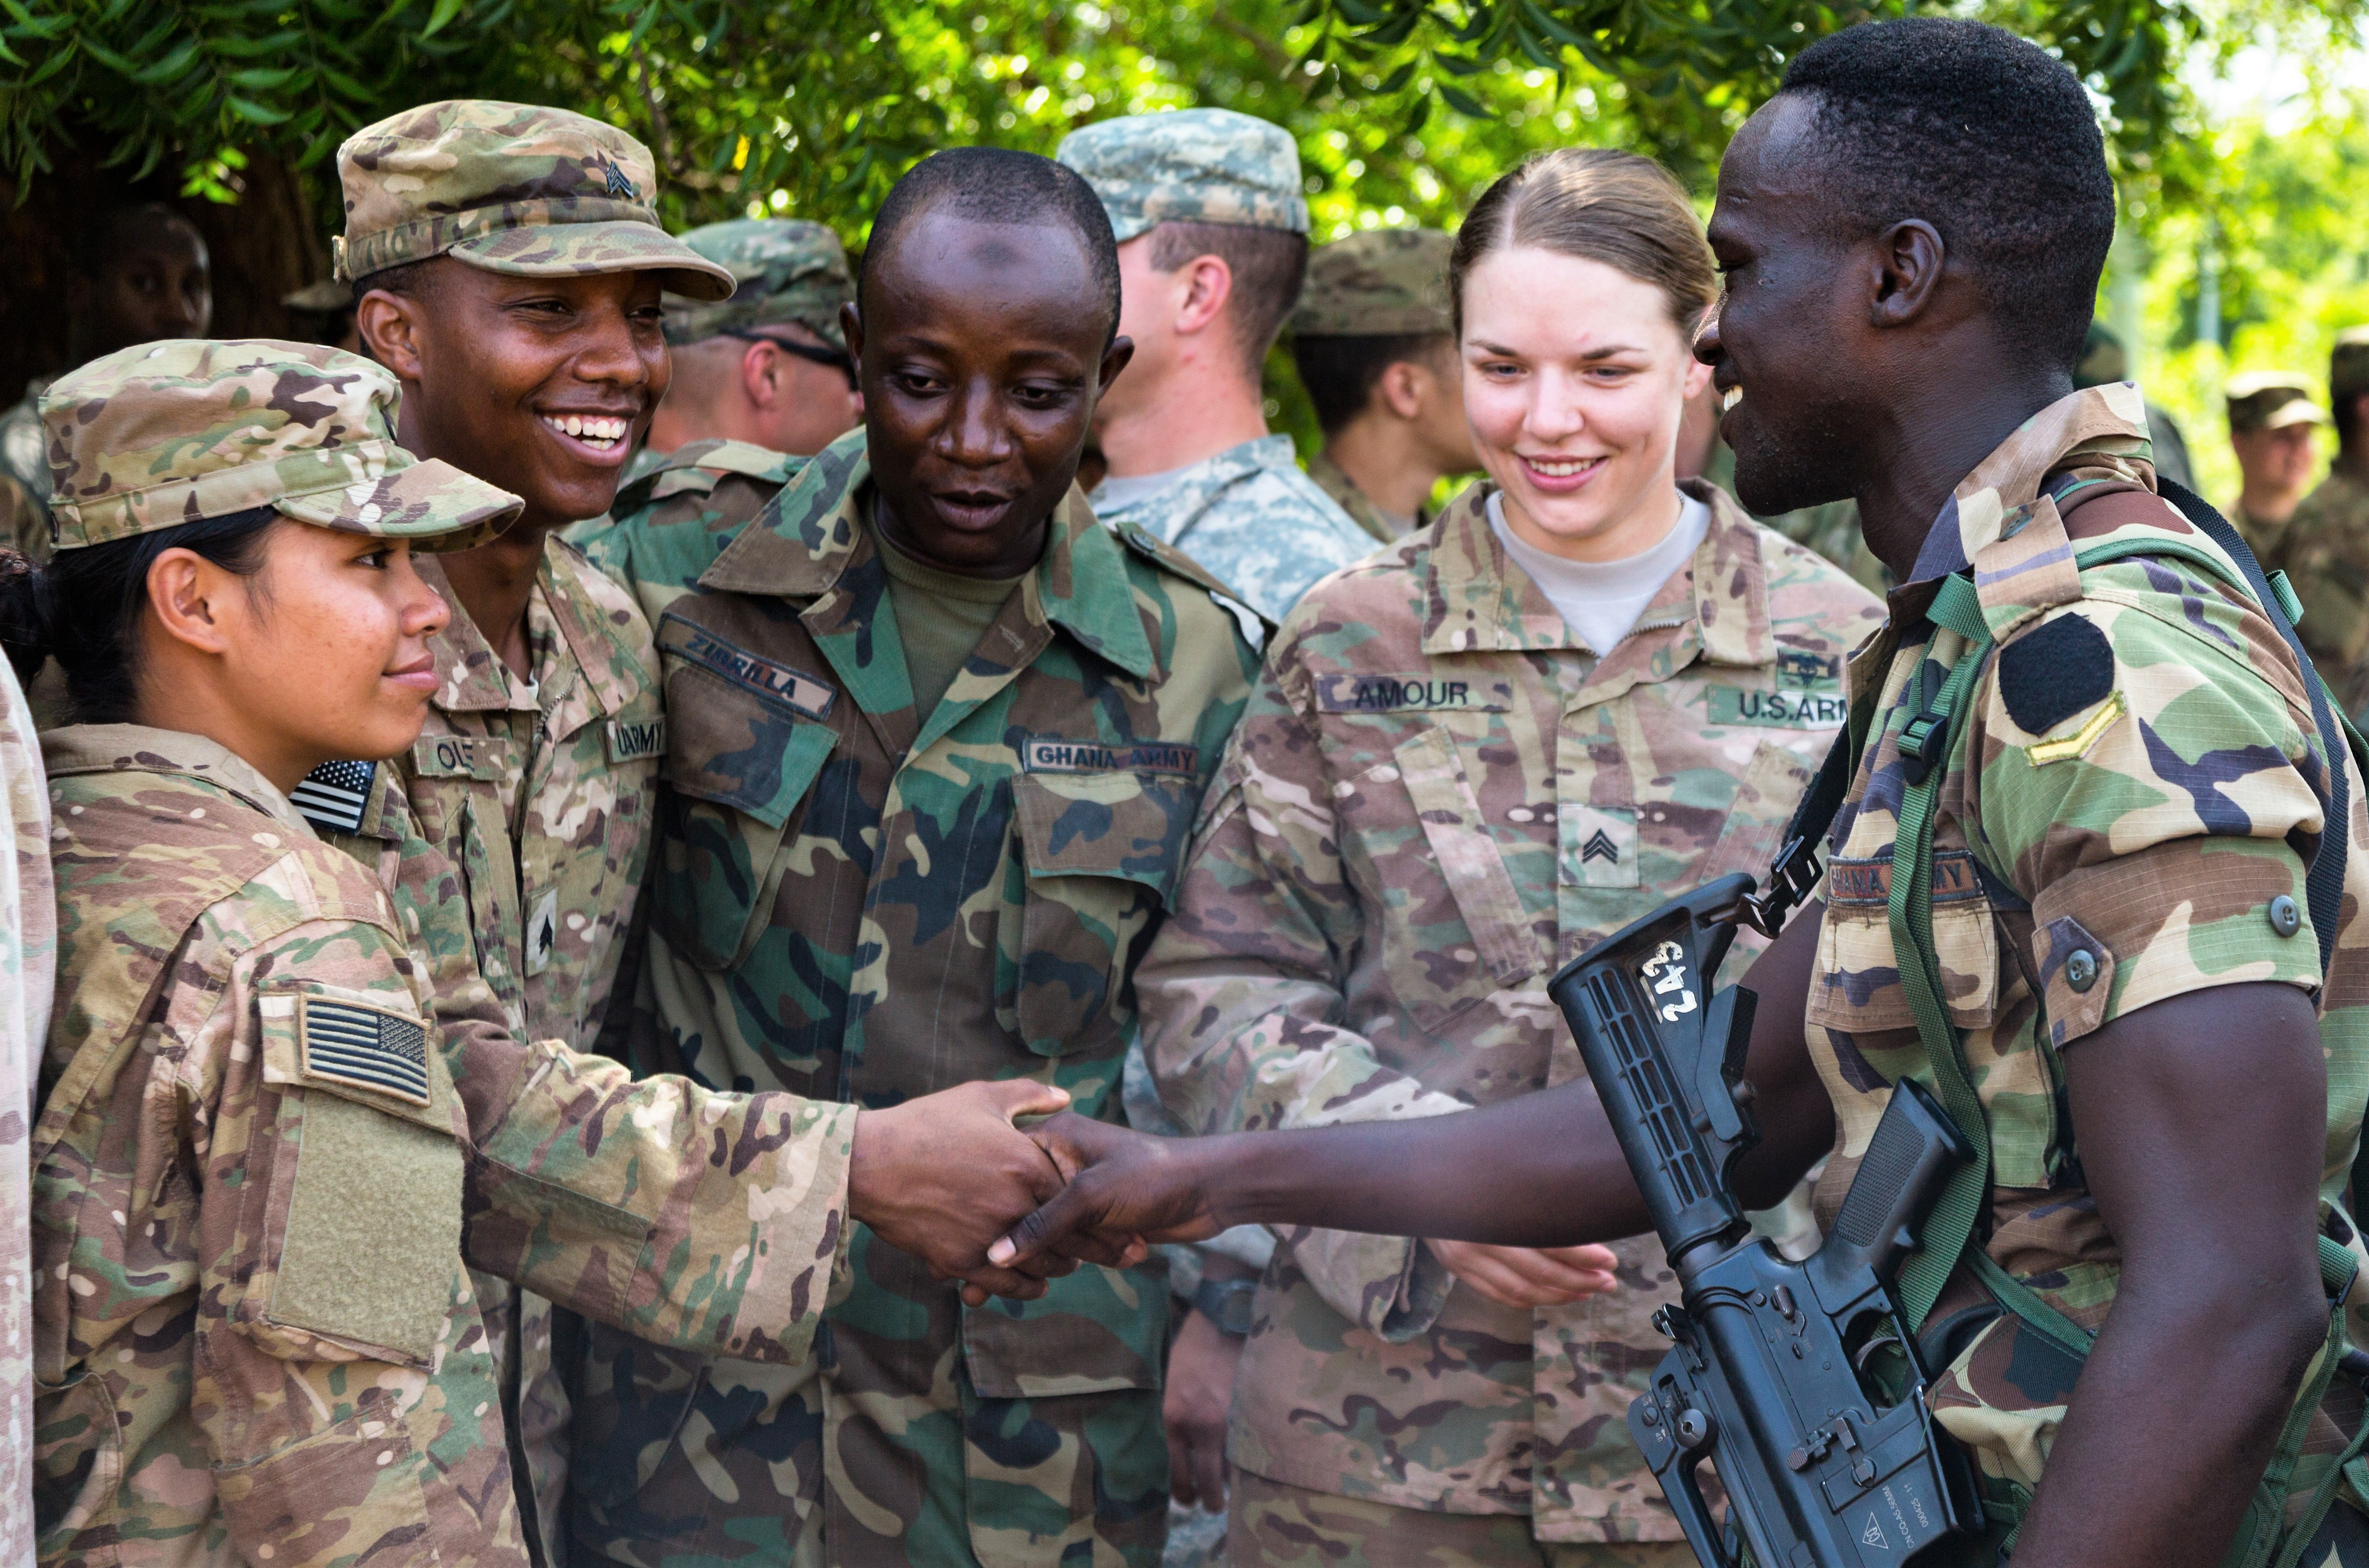 U.S. Soldiers assigned to the 1st Battalion, 506th Infantry Regiment, 1st Brigade Combat Team, 101st Airborne Division and Ghana Armed Forces soldiers participate in a farewell event during United Accord 2017 at Bundase Training Camp, Bundase, Ghana, May 29, 2017. United Accord (formerly Western Accord) 2017 is an annual, combined, joint military exercise that promotes regional relationships, increases capacity, trains U.S. and Western African forces, and encourages cross training and interoperability. (U.S. Army photo by Spc. Victor Perez Vargas)